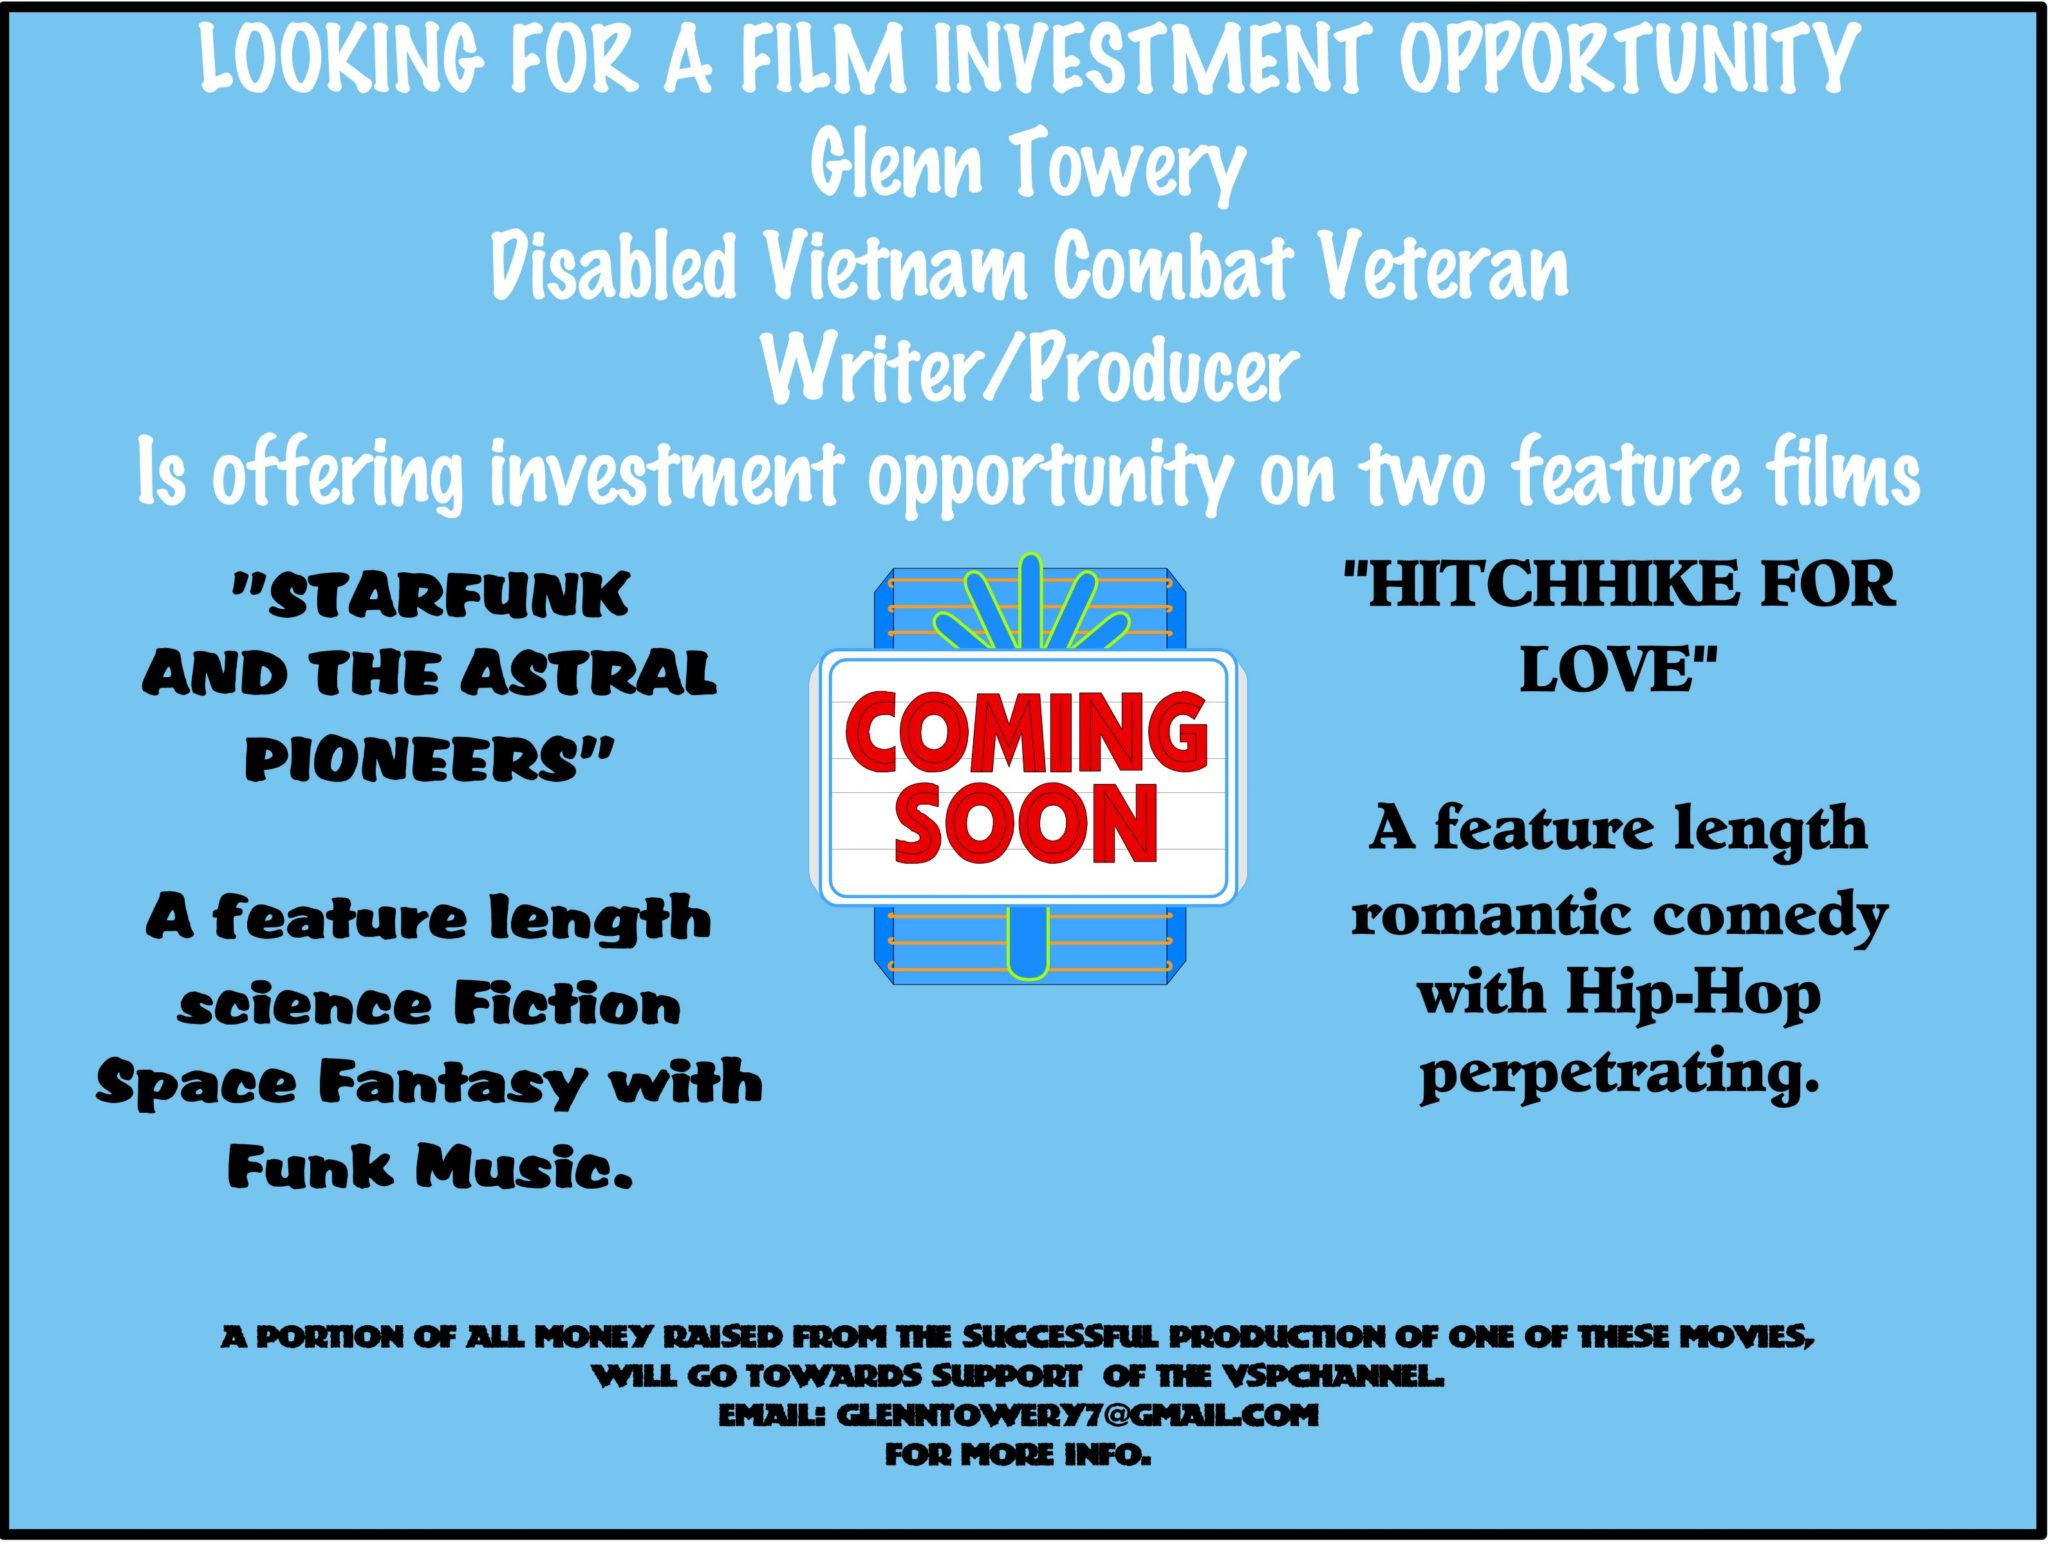 Support Veteran Filmmaker Glenn Towery